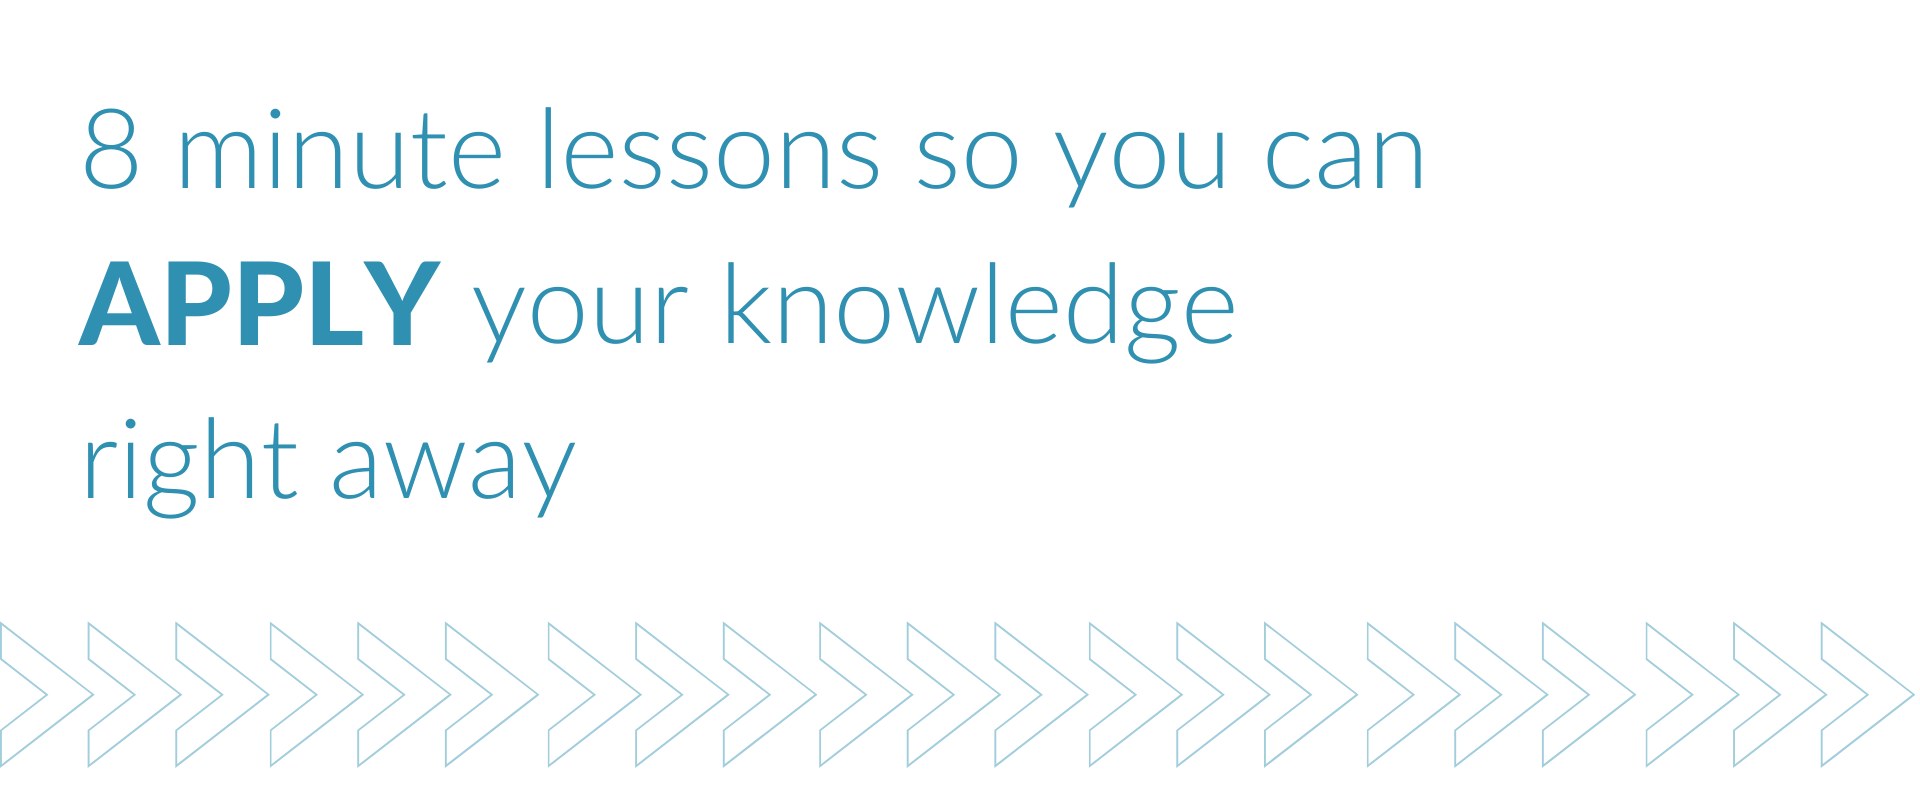 8 minute lessons so you can apply your knowledge right away